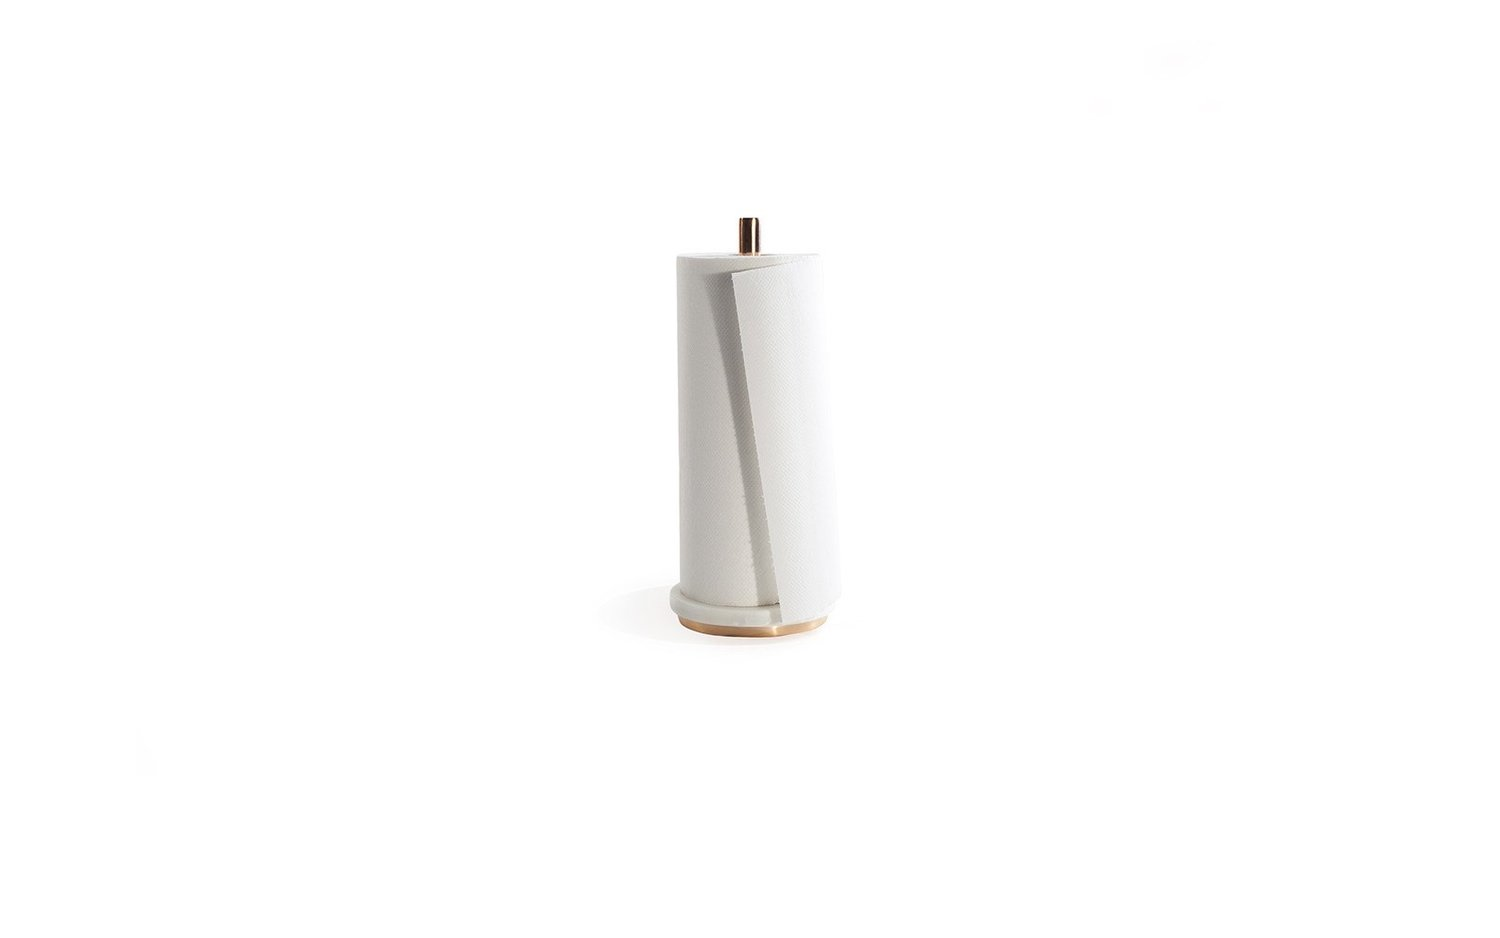 Mara copper paper towel holder with